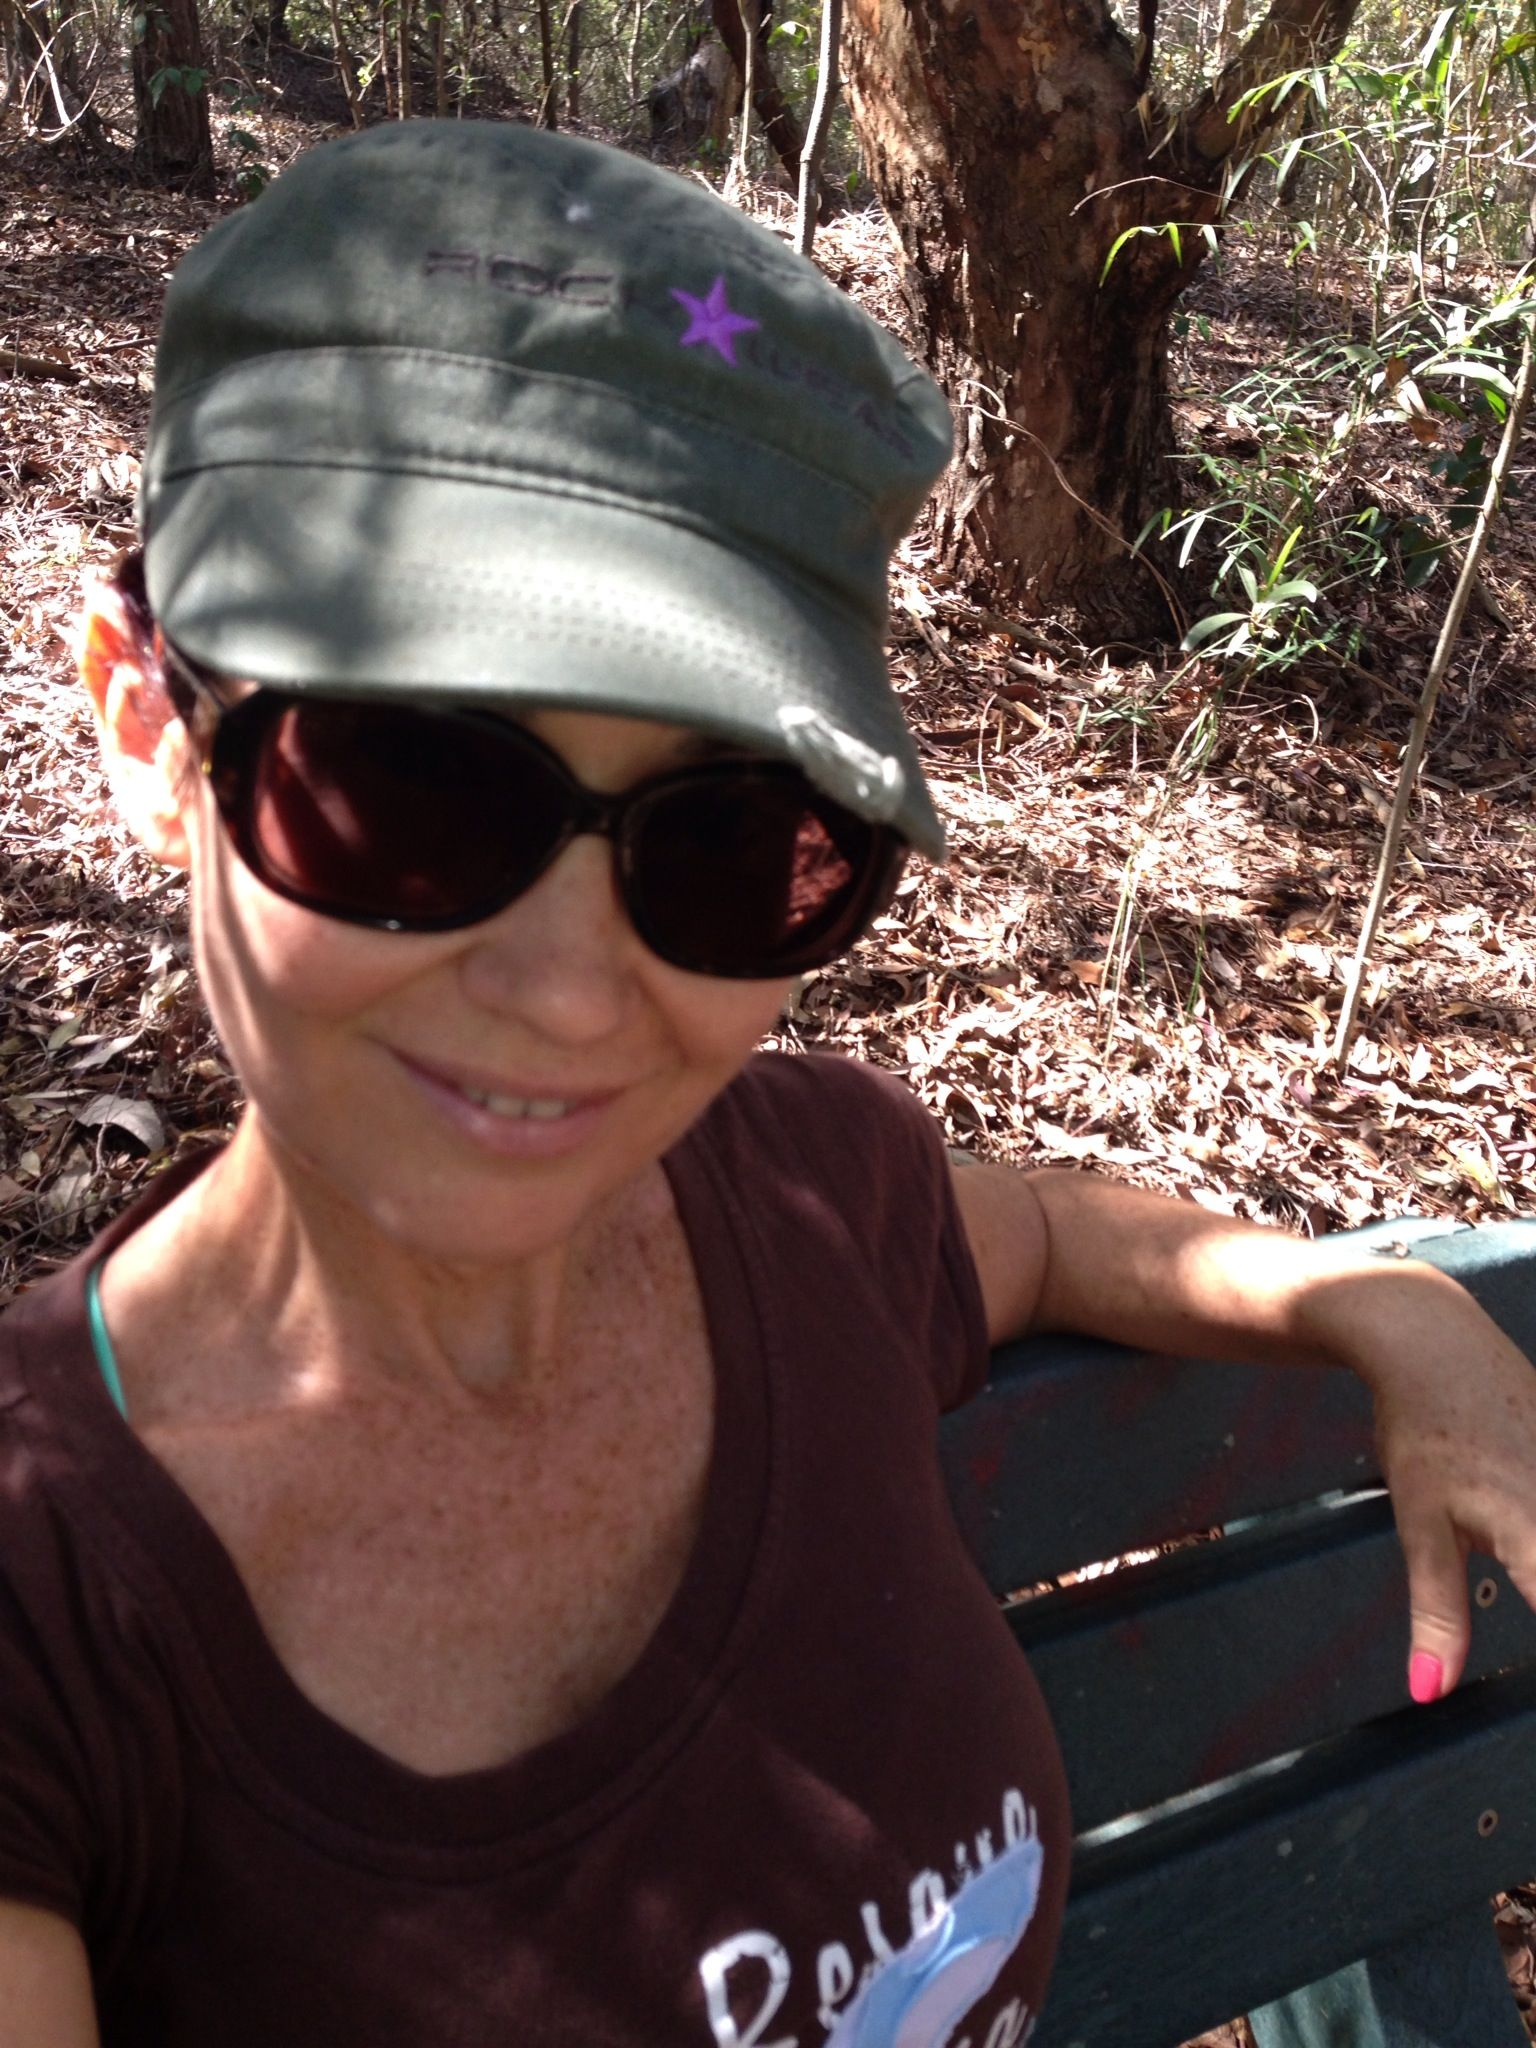 Sittings with the bush land faeries